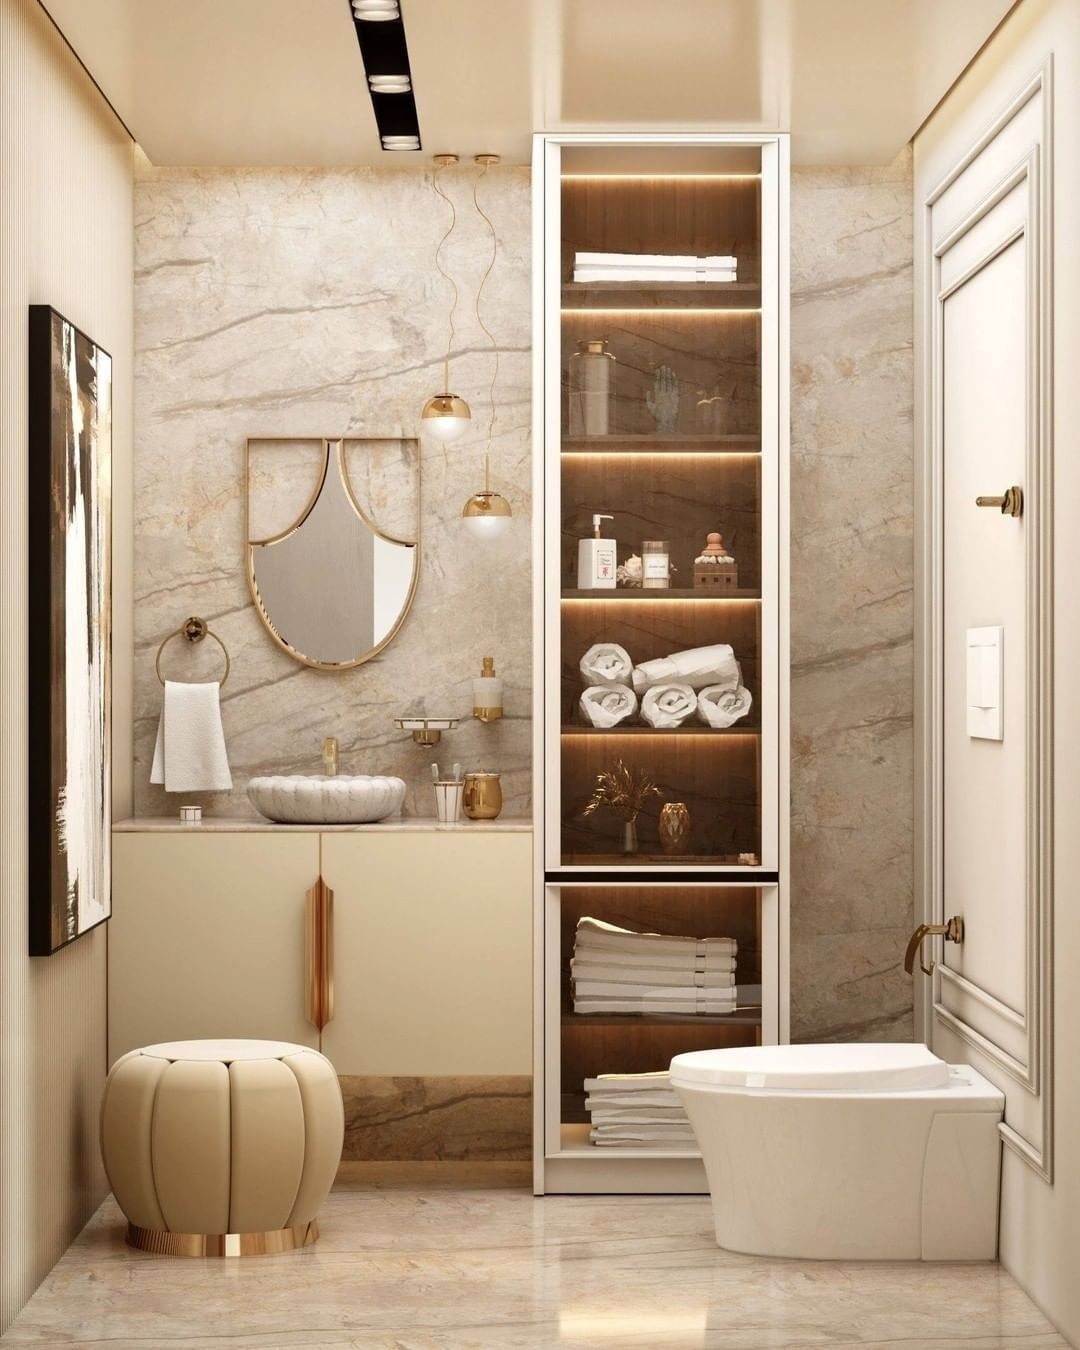 A SPECIAL FURNITURE PIECE FOR YOUR MODERN BATHROOM